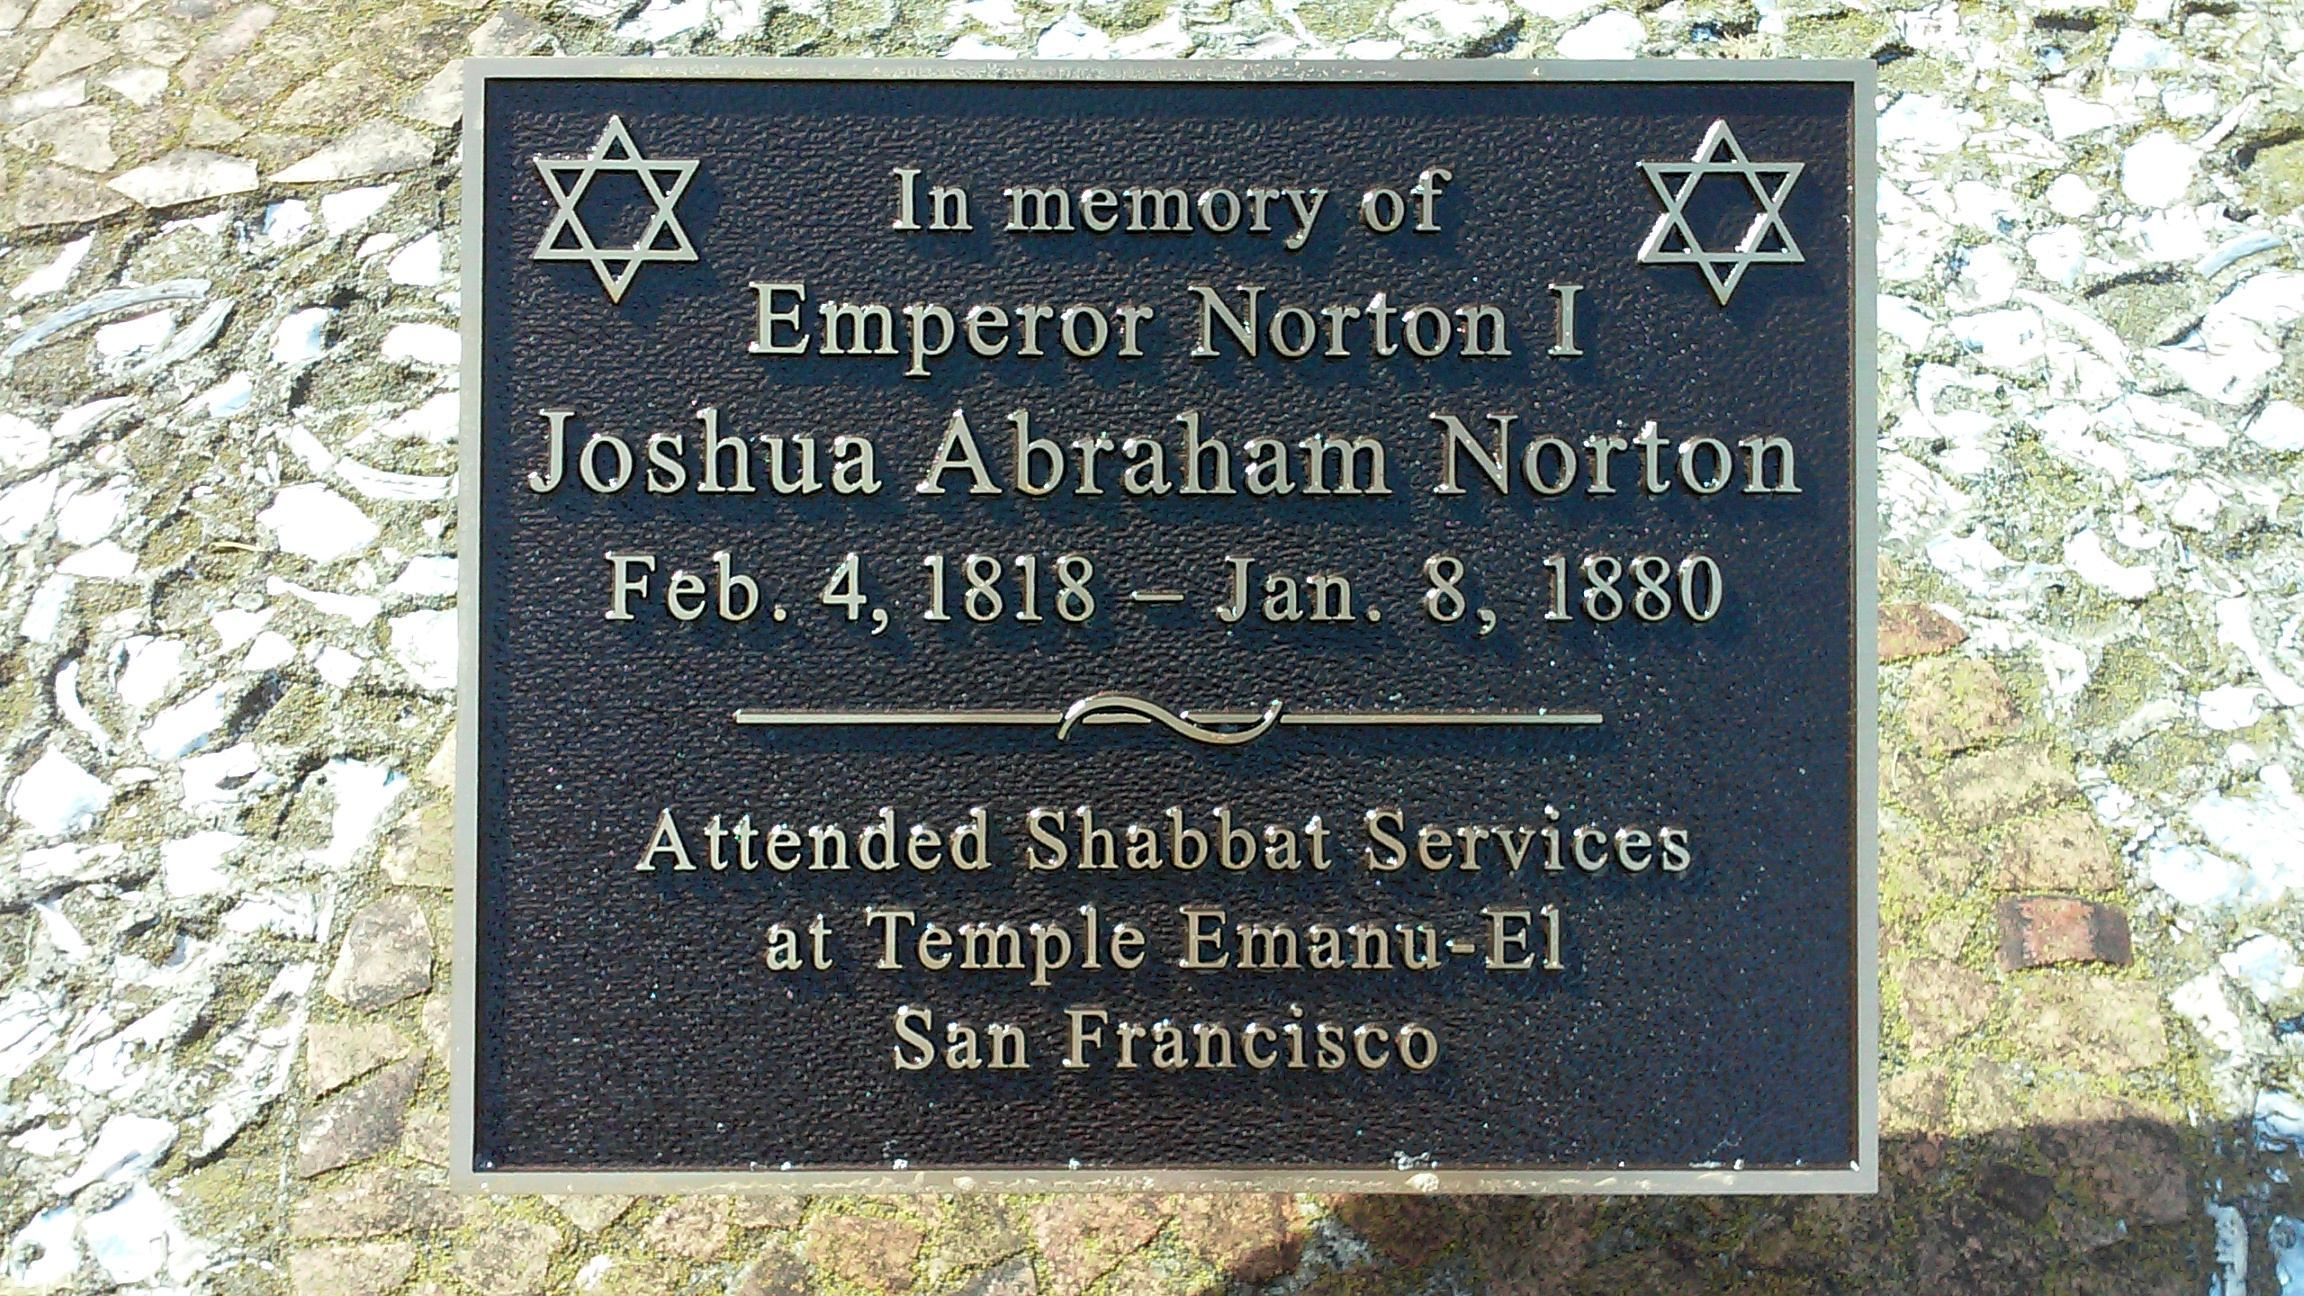 The Emperor's Bridge Campaign helped to sponsor this new plaque, dedicated in May at Home of Peace in Colma, Calif., the cemetery of Congregation Emanu-El, in San Francisco, where Emperor Norton attended synagogue. The plaque was an independent project of Judi Leff, who is an Advisor to the Campaign.